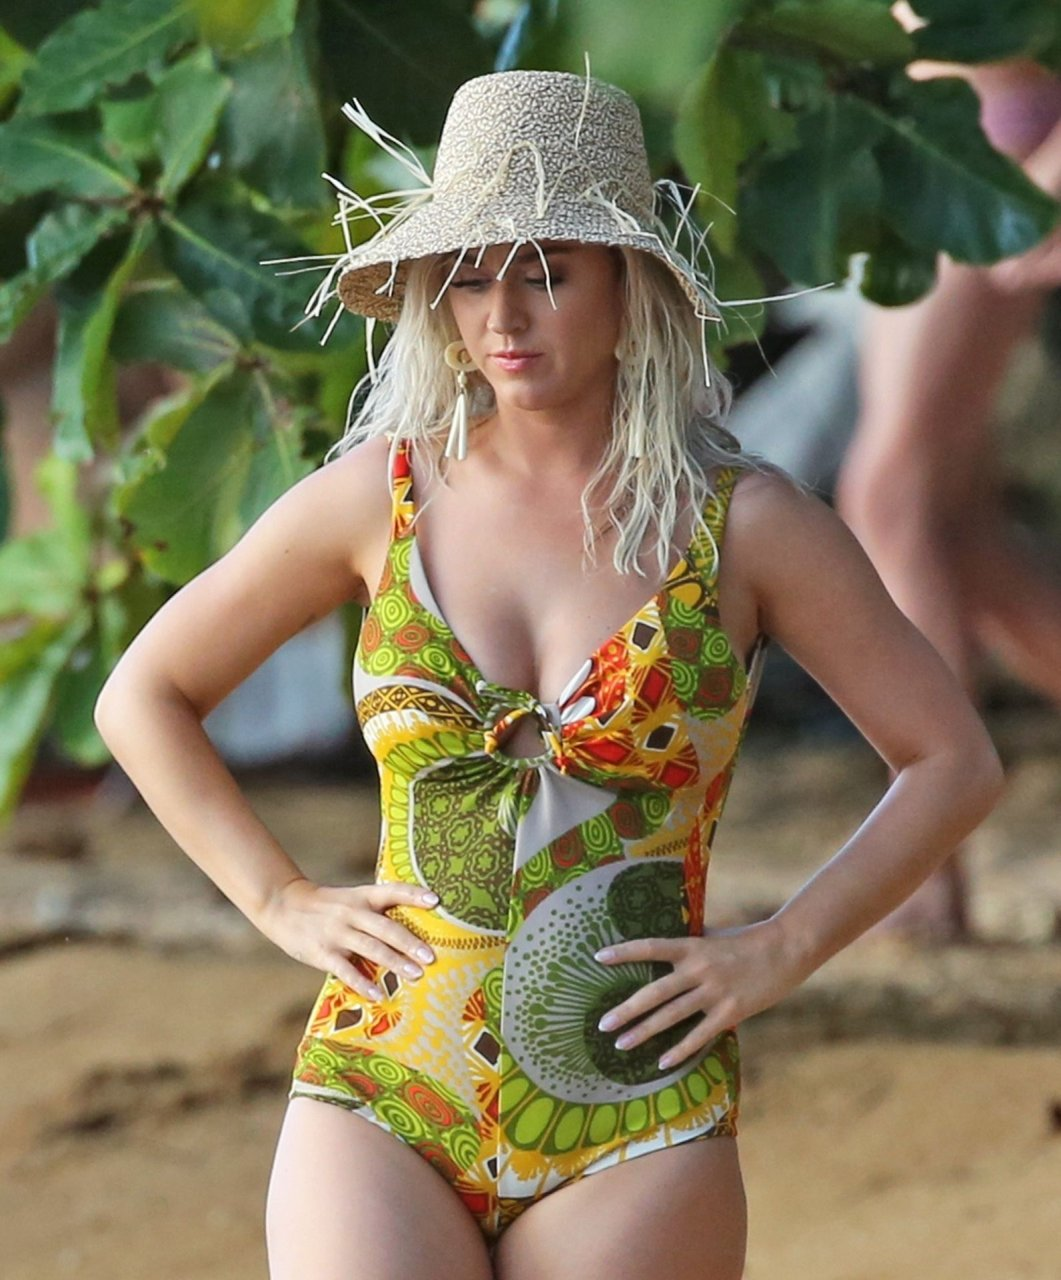 Katy Perry -another swimsuit for her music video in Hawaii 7-2-19